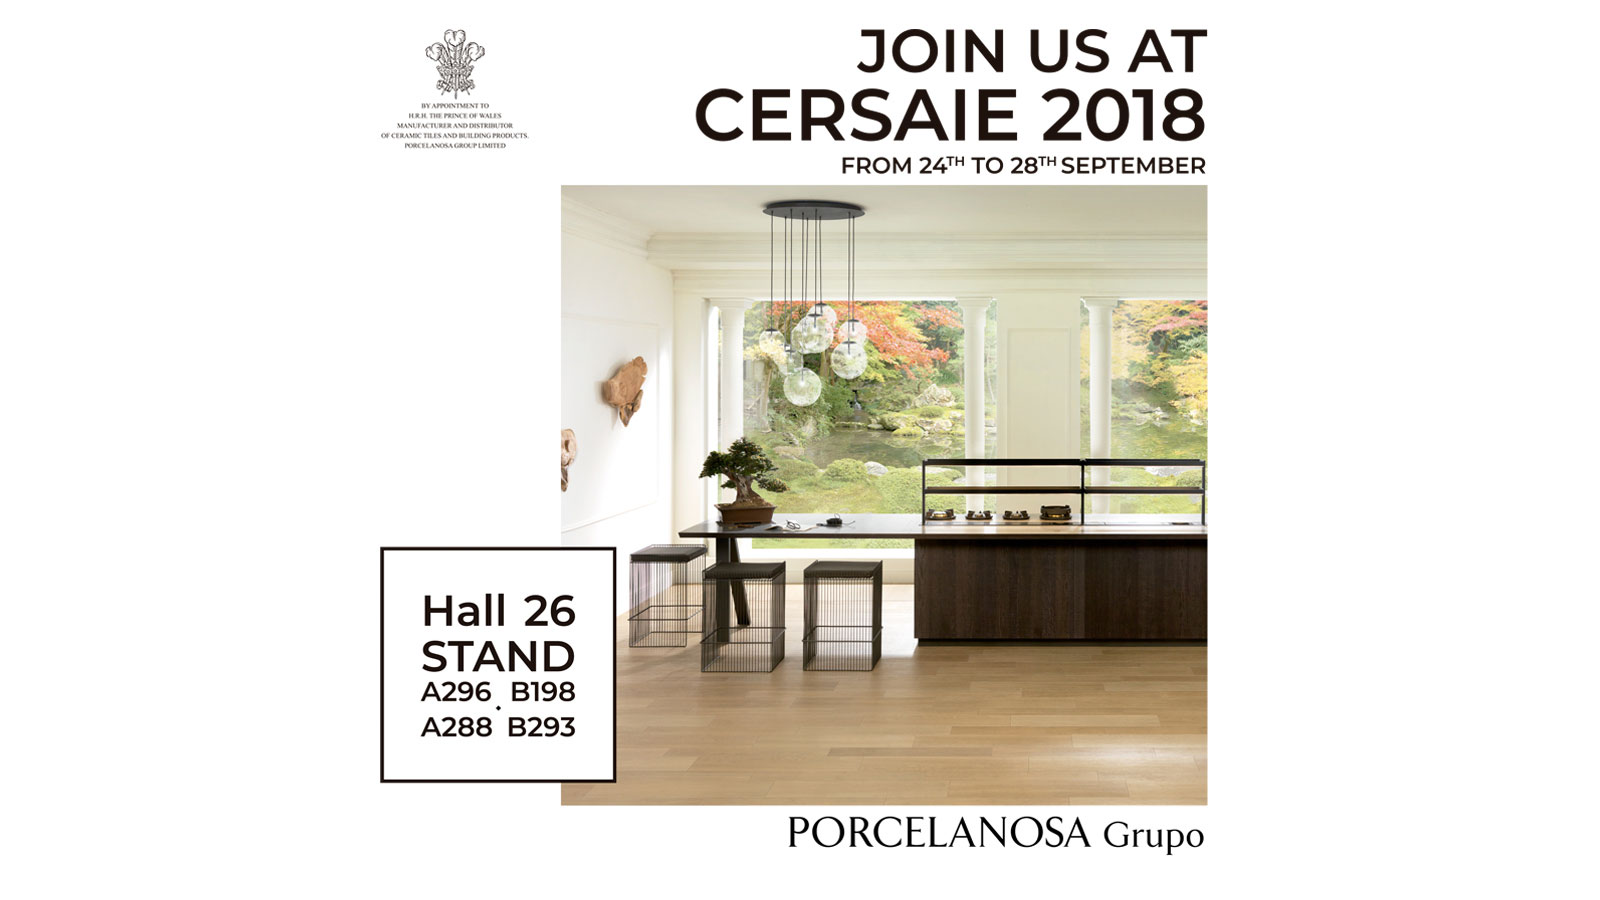 The PORCELANOSA Grupo showcases its latest innovations at Cersaie 2018